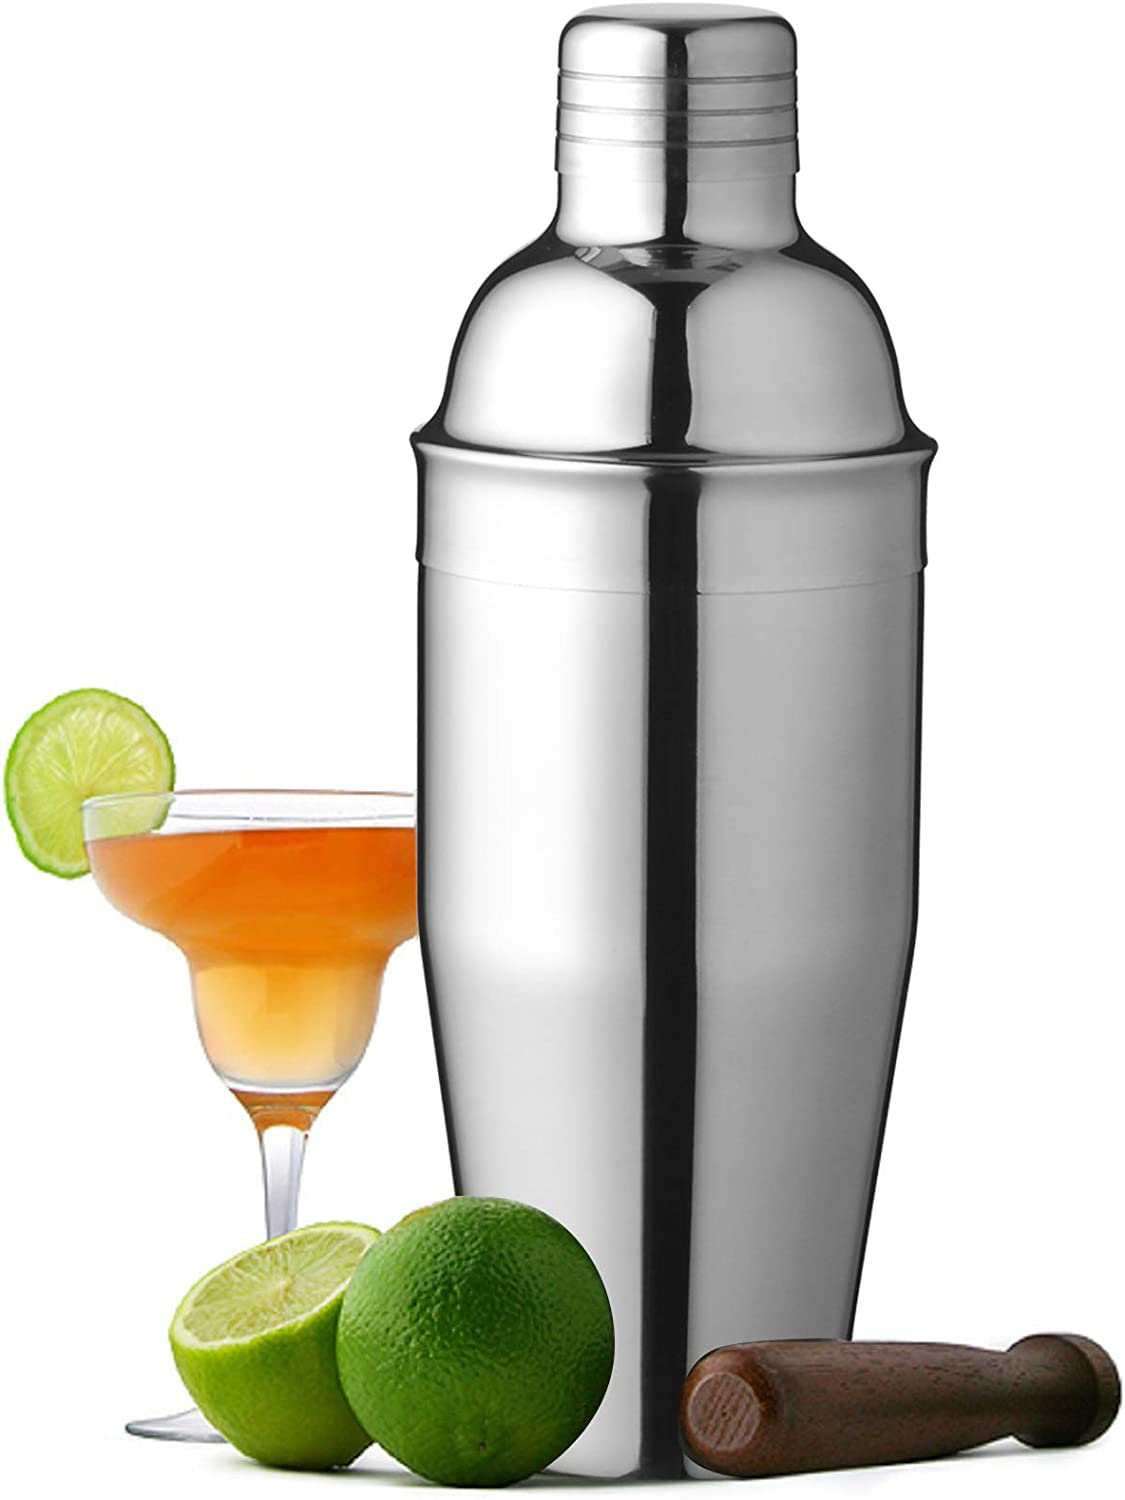 Cocktail Shaker 25 Oz/750ml Food Grade Stainless Steel Martini Shaker with Cocktail Strainer, Bar tools Bartender Kit Gifts